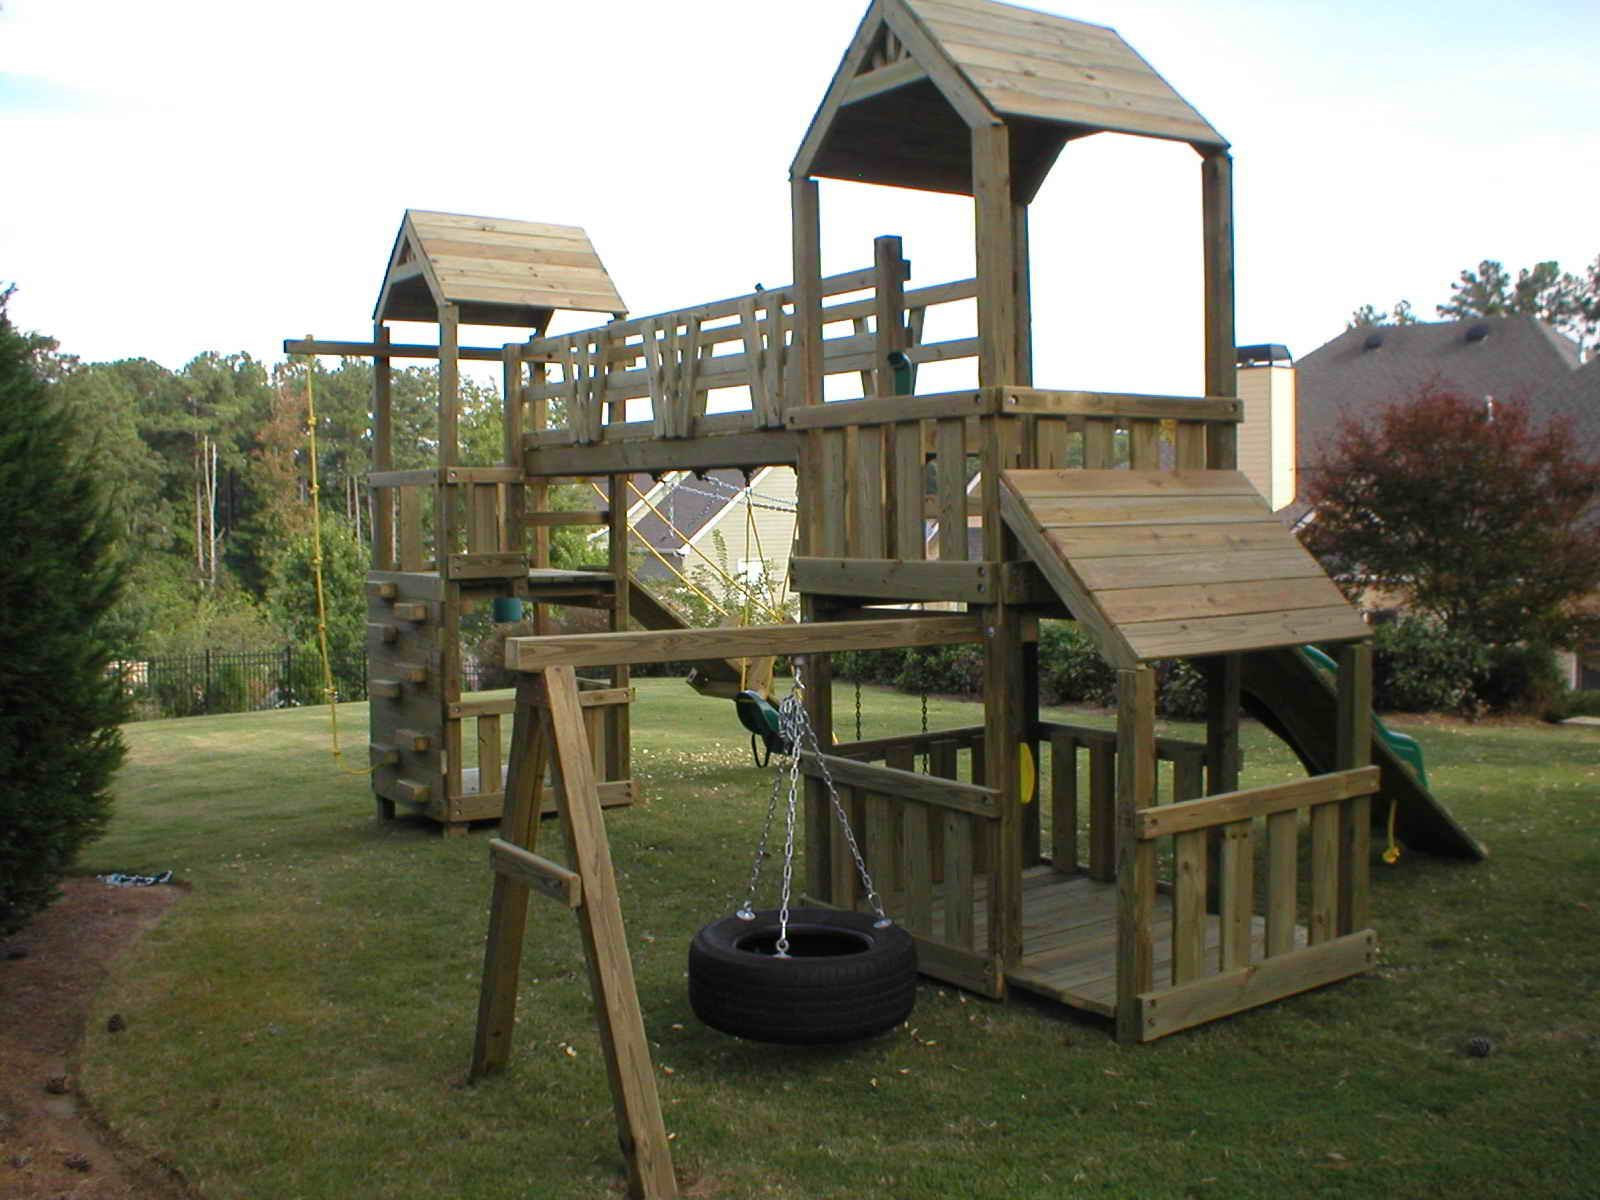 Collecting kids play structure ideas | Outdoor play ...